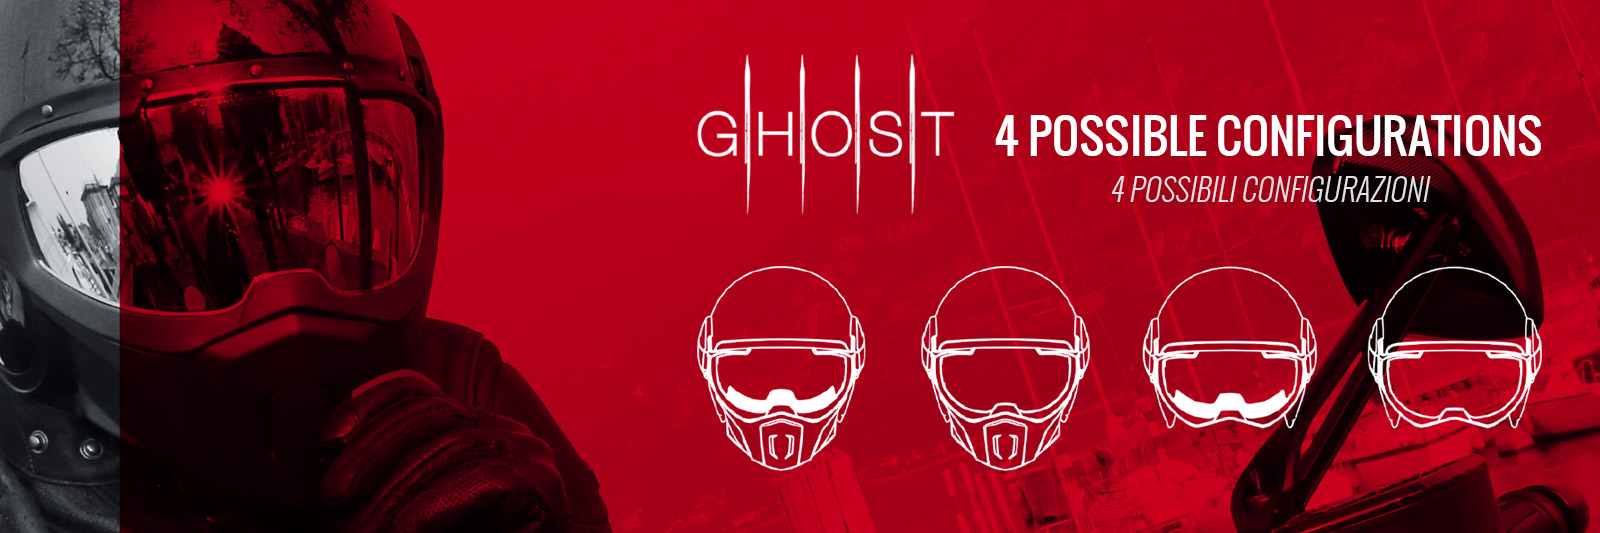 Caberg Ghost 4 options